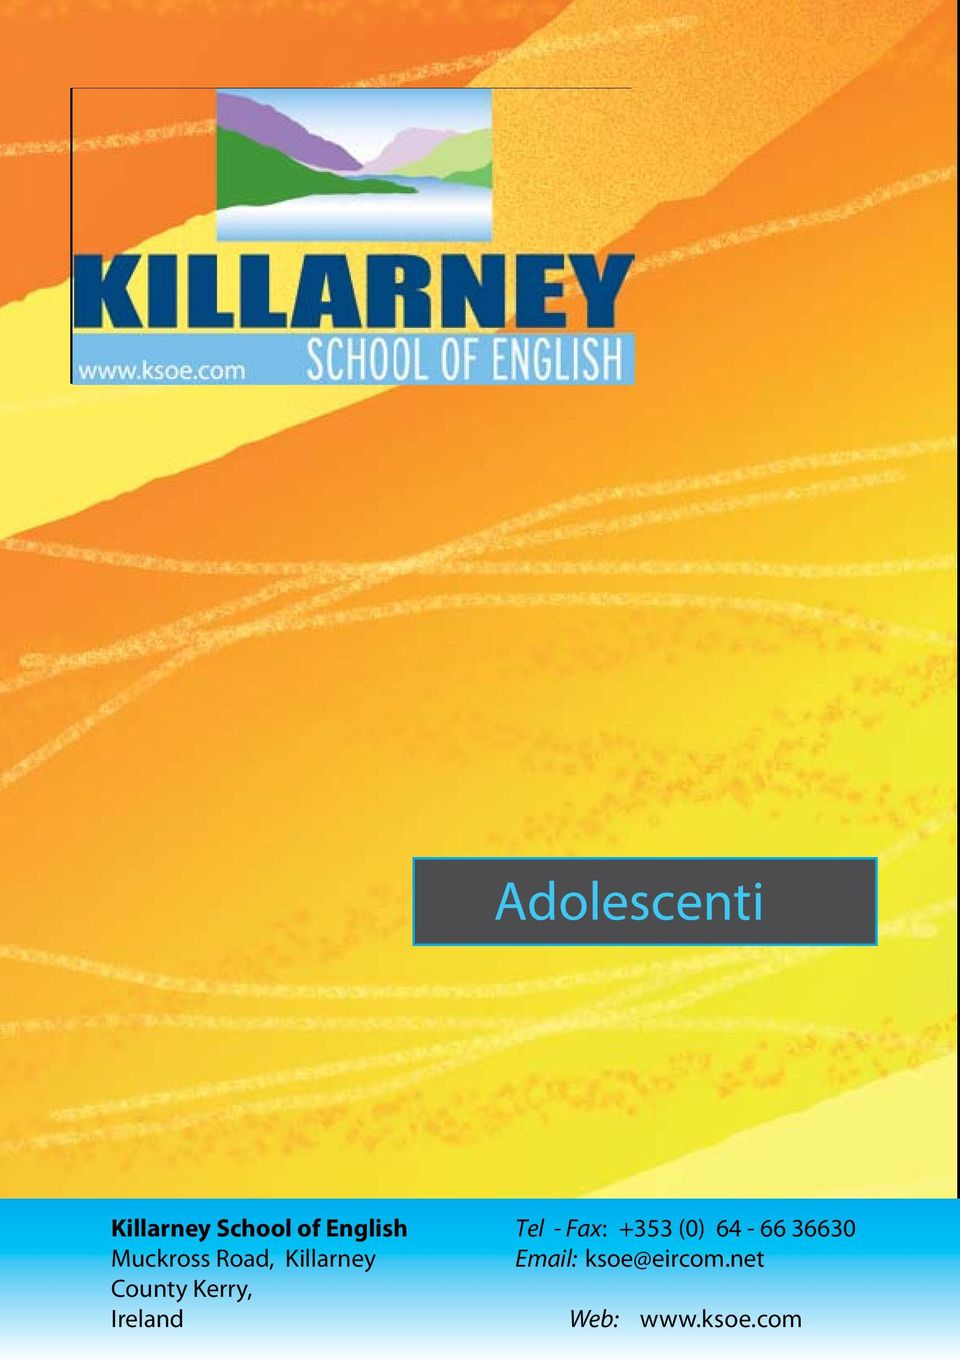 net Contact information: Killarney School of English, Muckross Road, Killarney, County